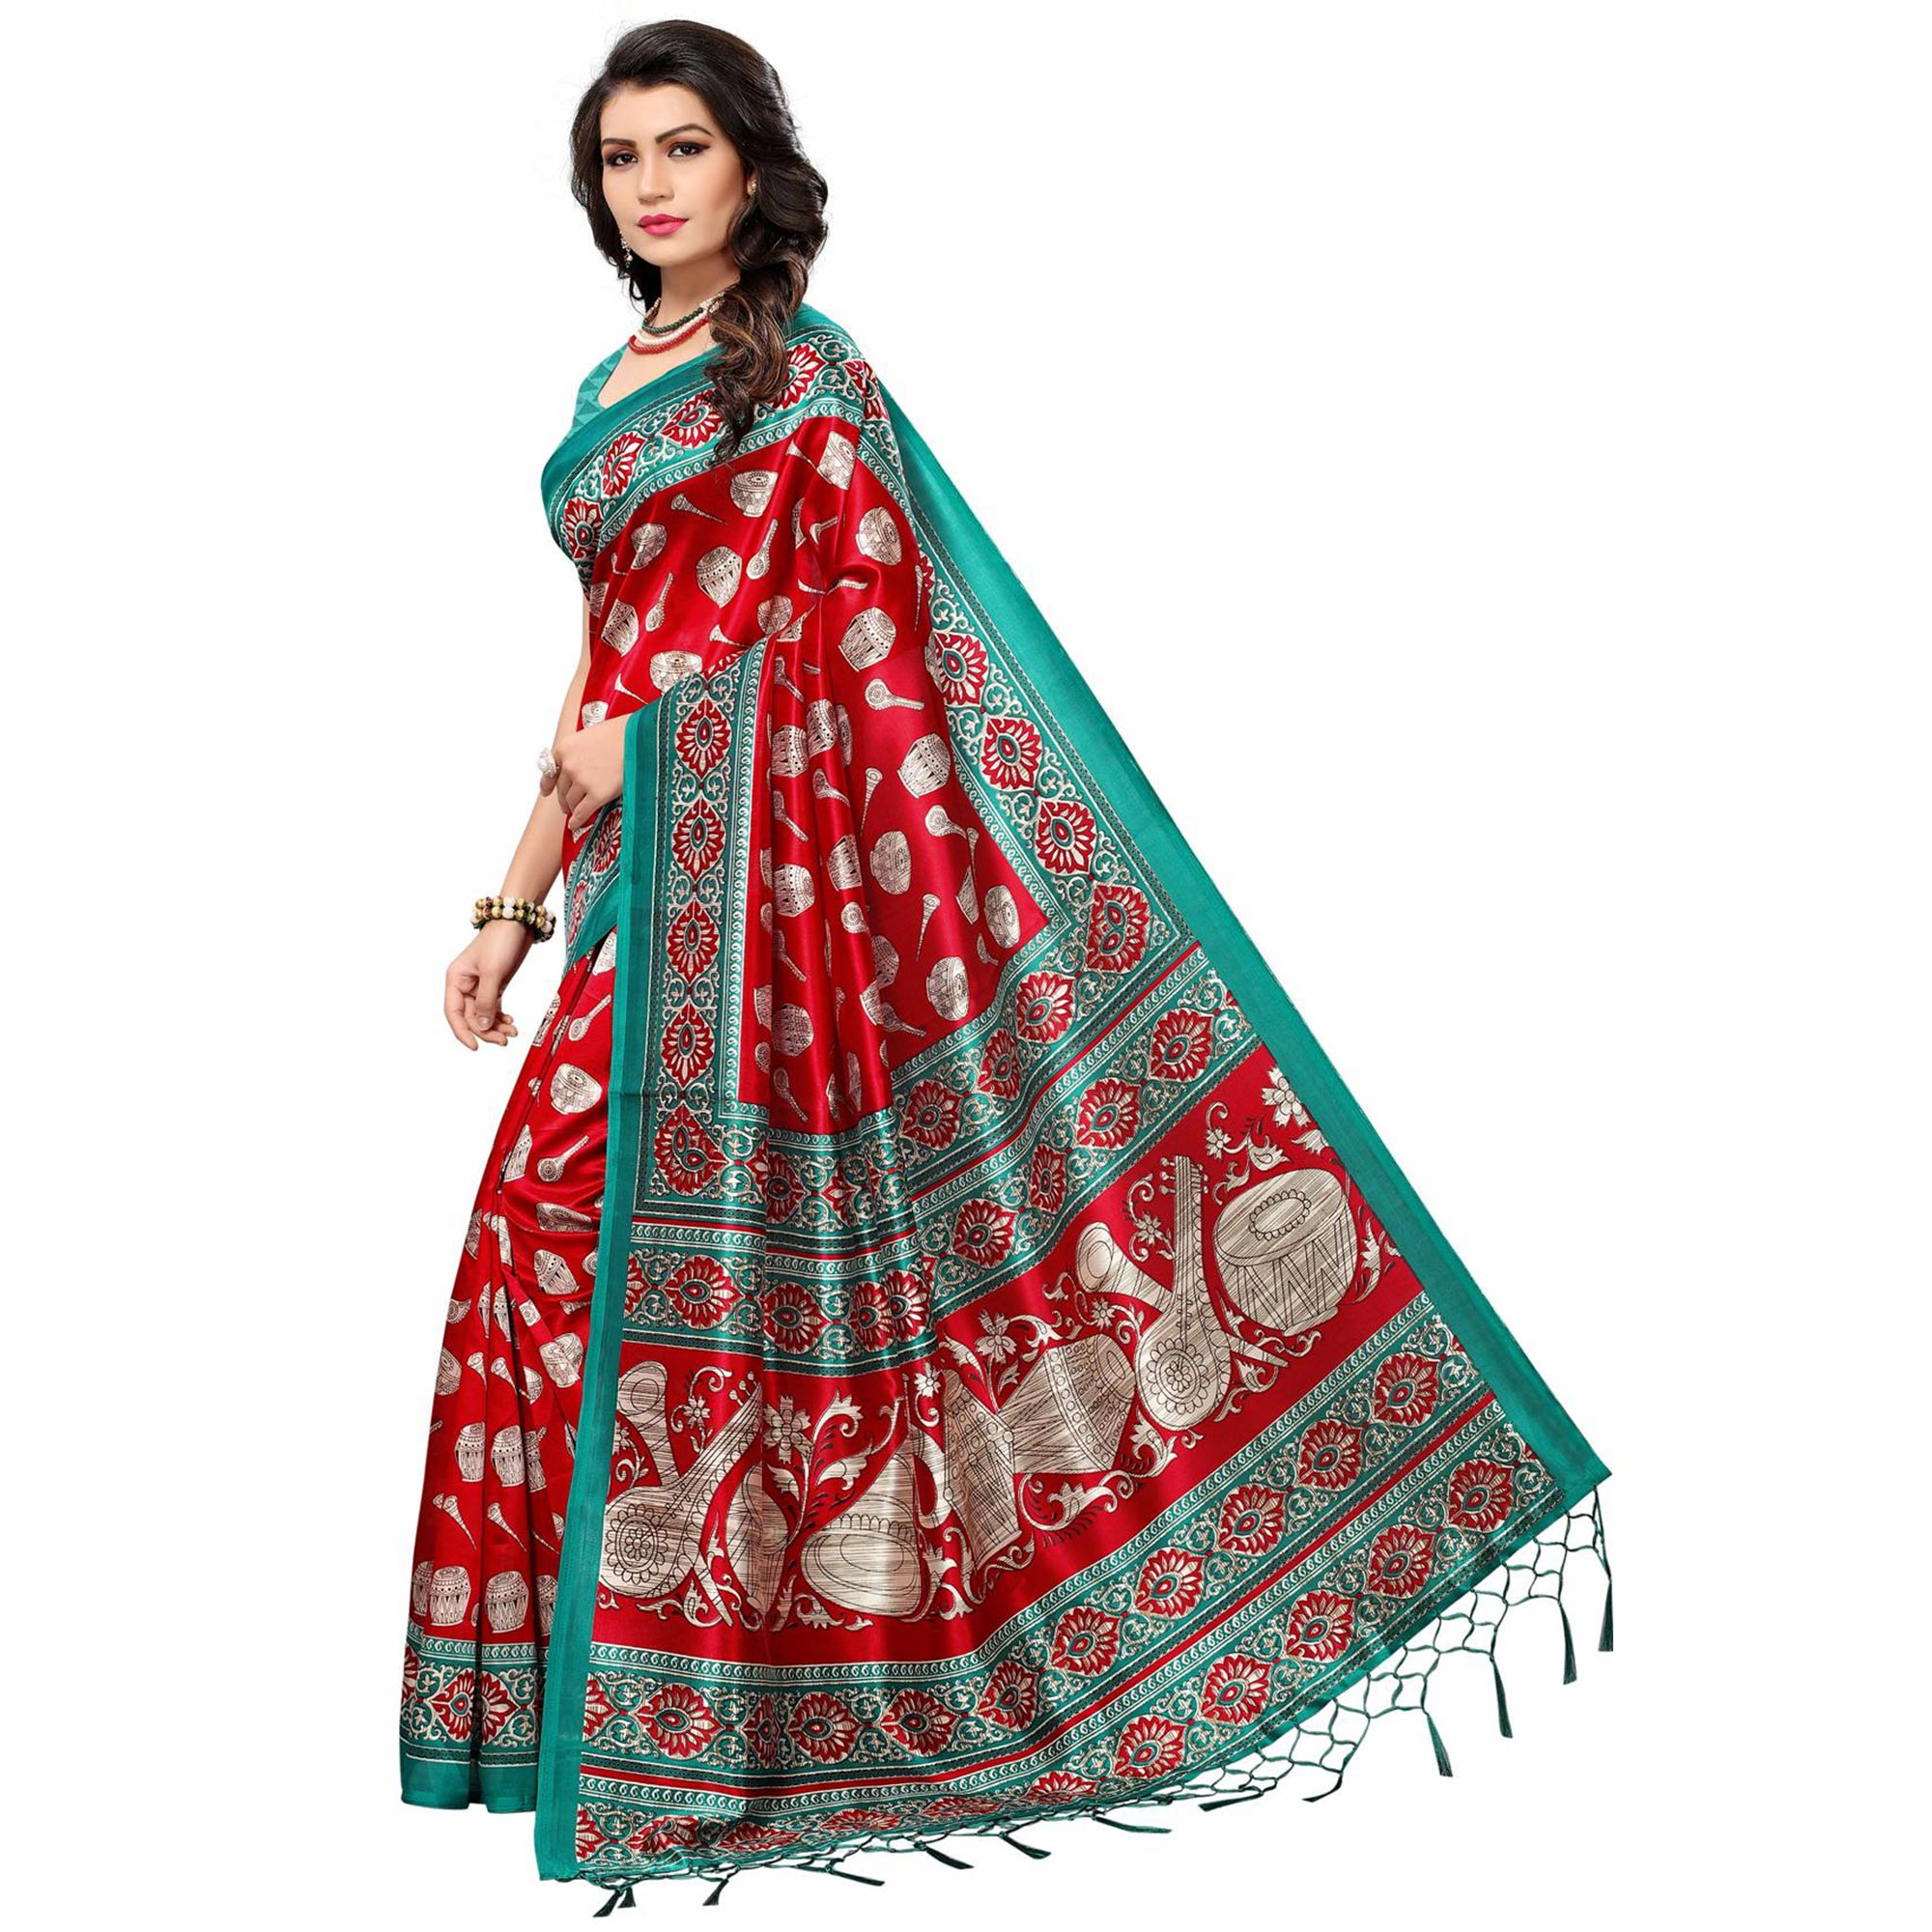 Snazzy Red Colored Festive Wear Printed Mysore Art Silk Saree